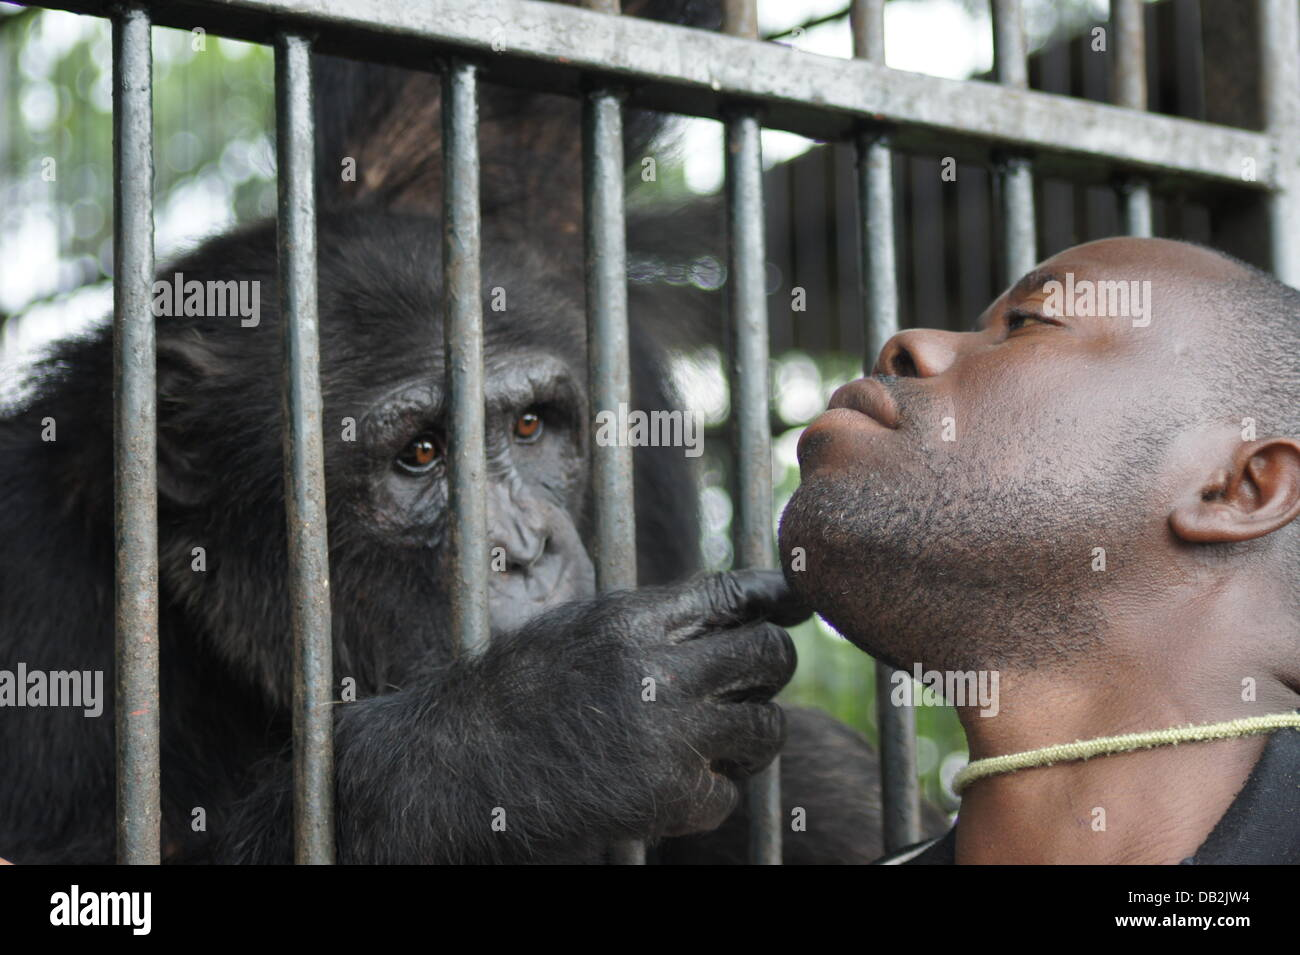 Steny Nyendwi, one of the managers of the Chimpanzee island Ngamba Island in the Lake Victoria, Uganda, takes care - Stock Image